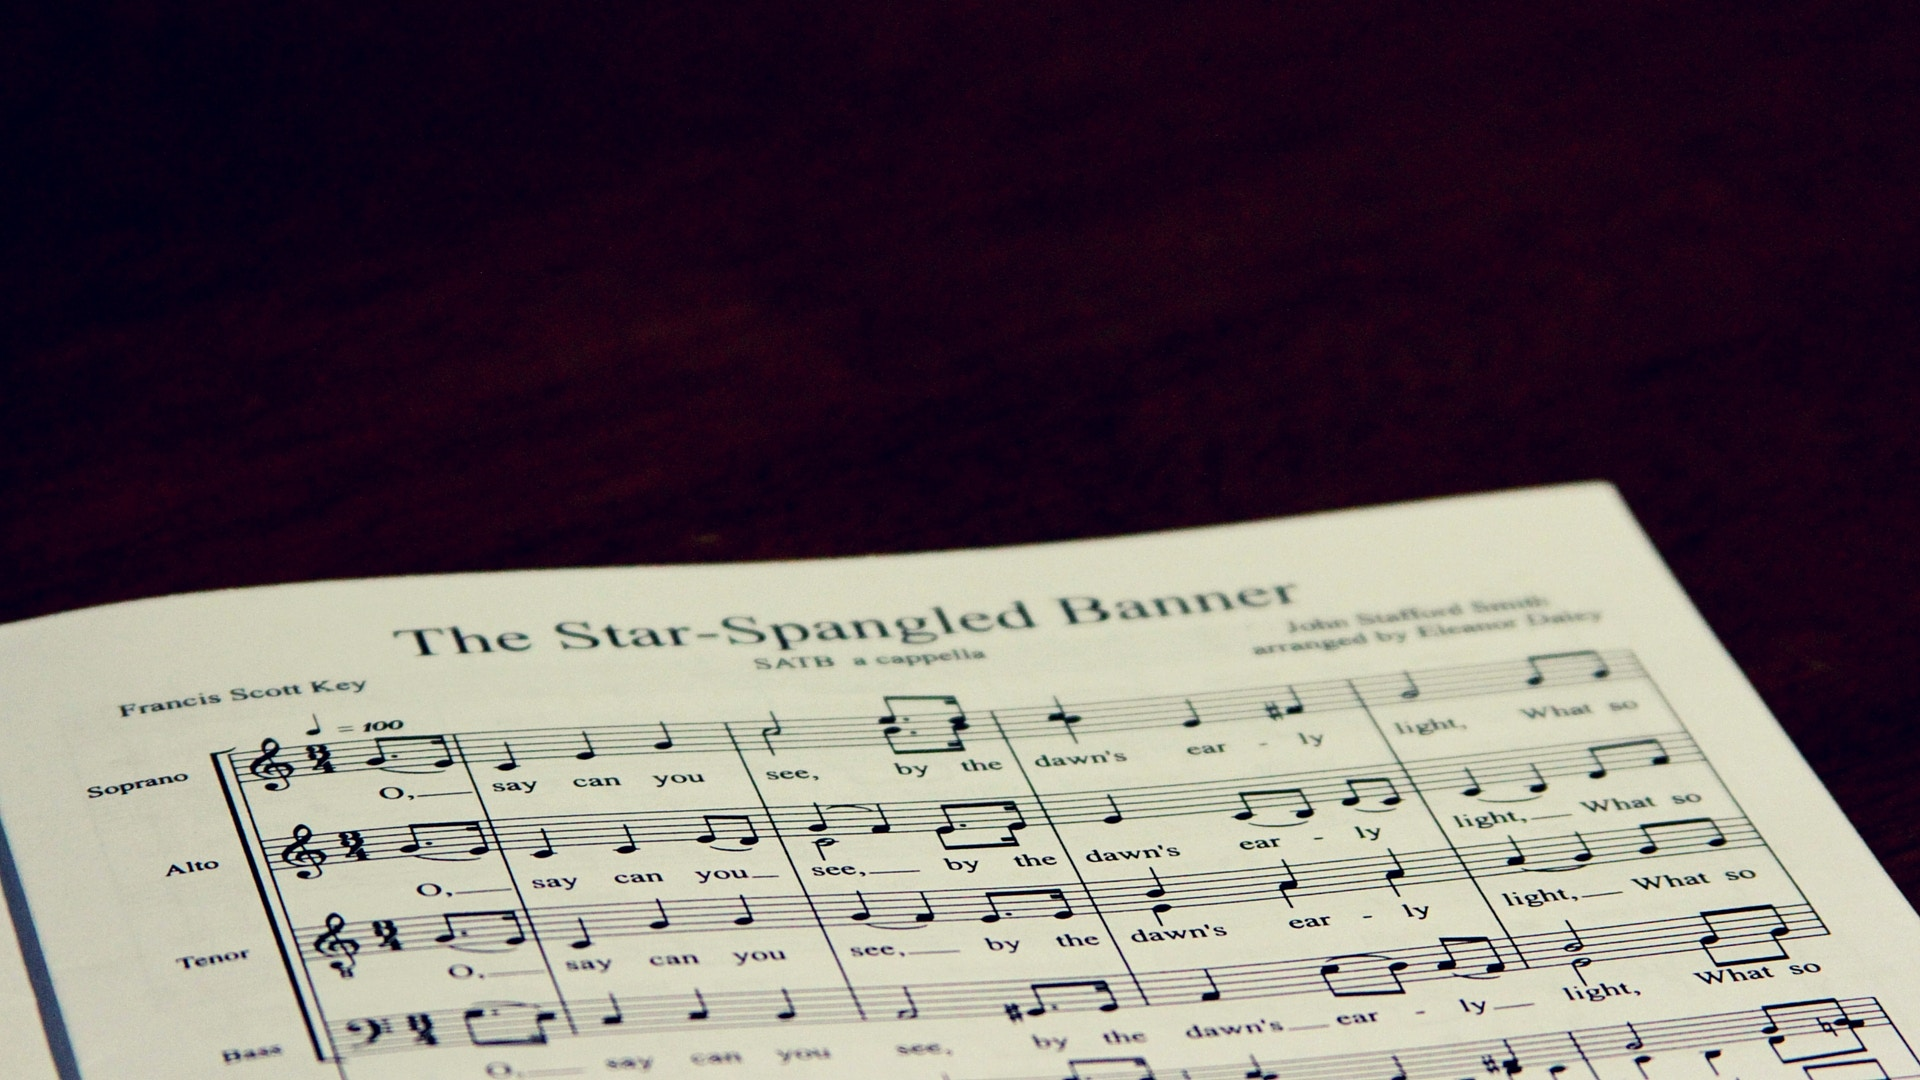 """Here is a free lesson all about the """"Star-Spangled Banner,"""" the poem and the song. #musiclessonsforkids #musiclesson #musiceducation #homeschoolmusic #patrioticmusic #musicinourhomeschool"""